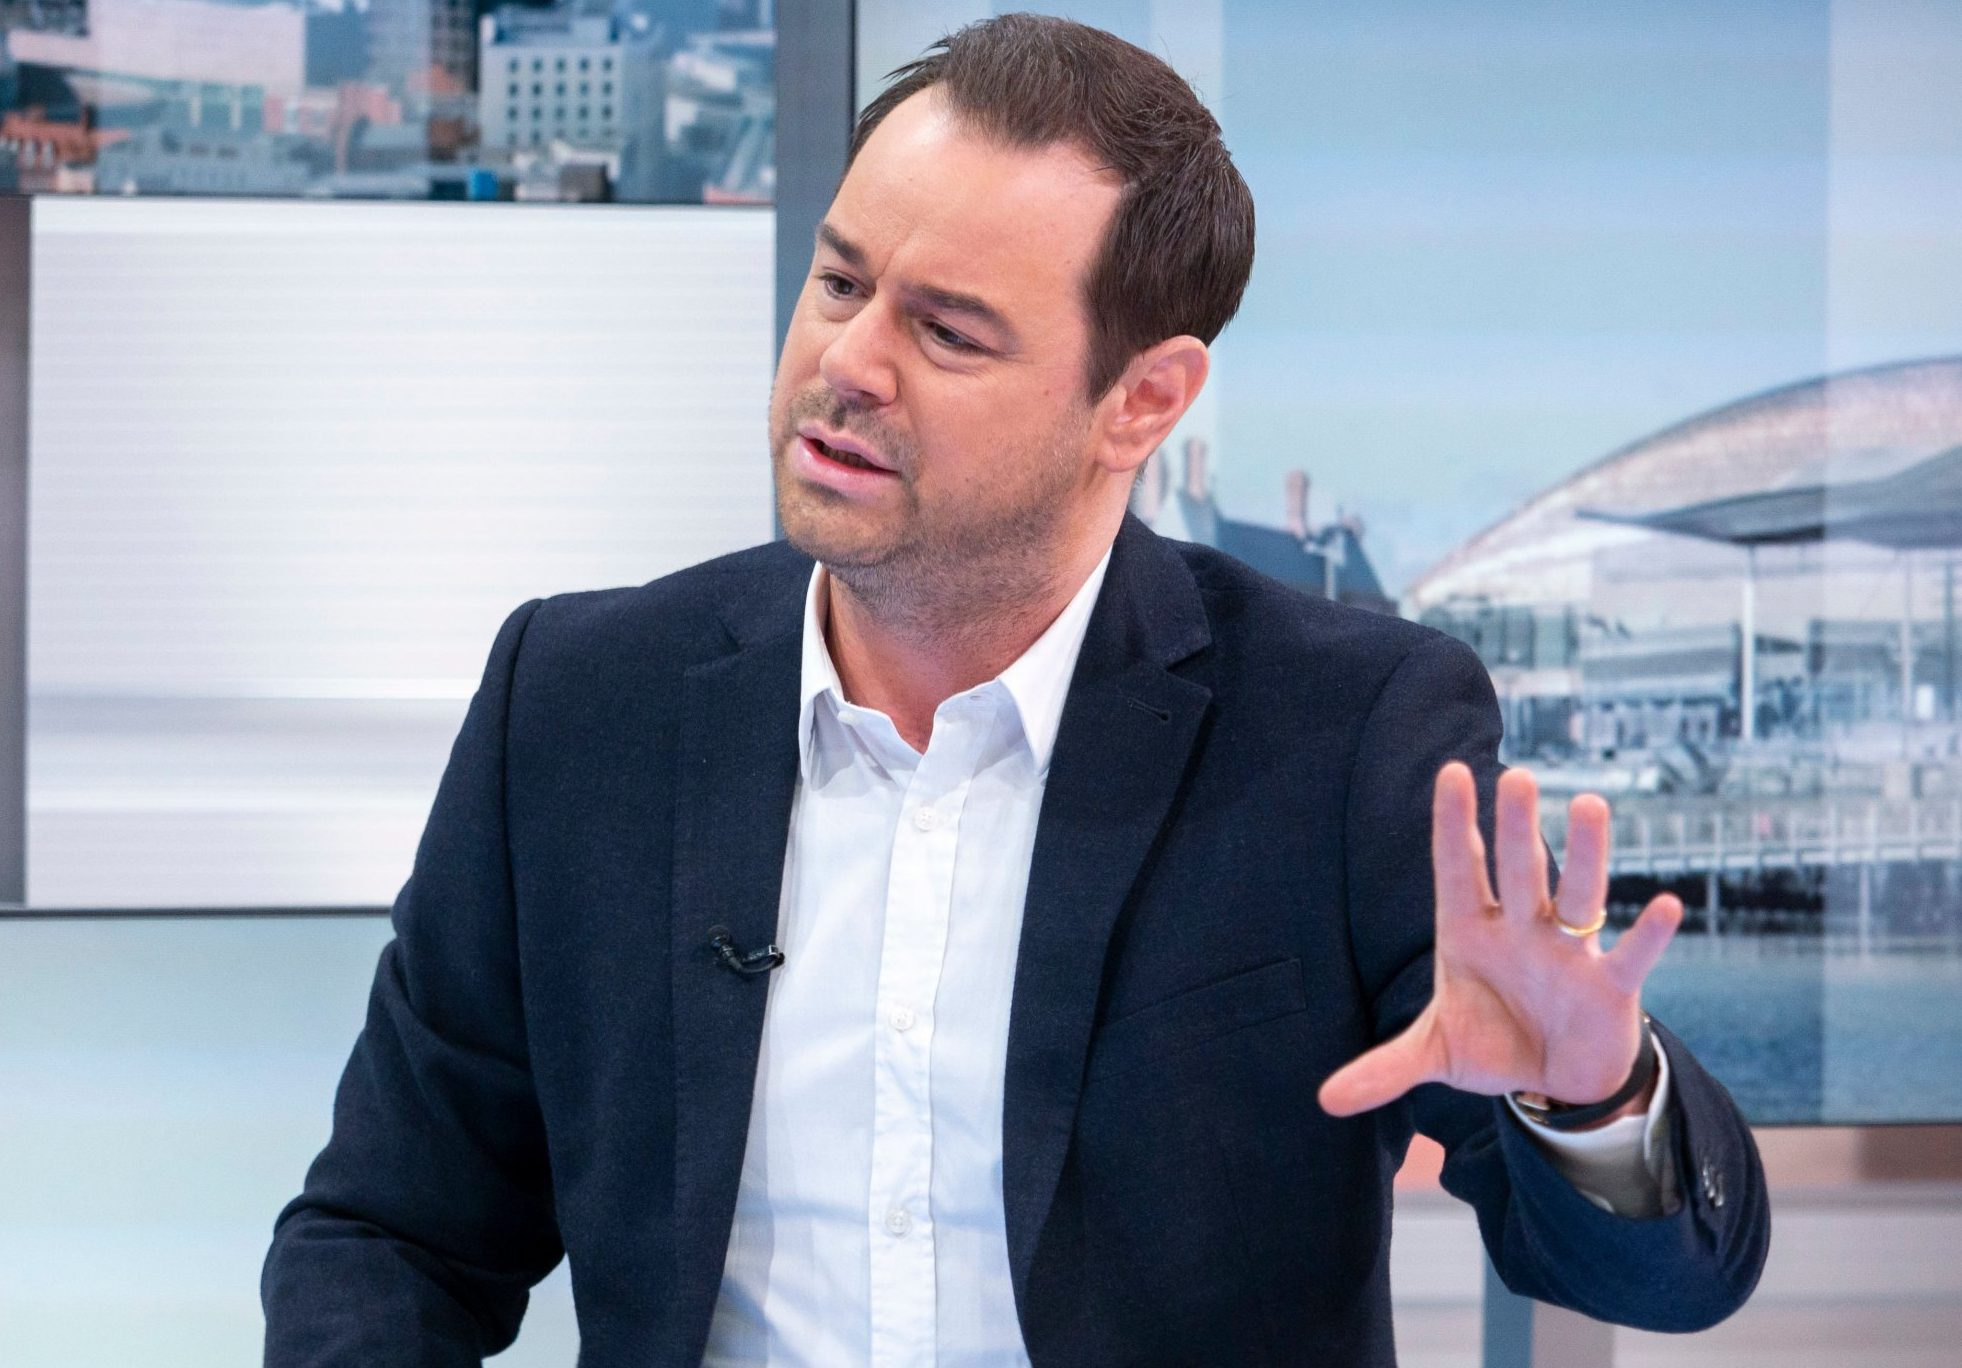 Editorial use only Mandatory Credit: Photo by S Meddle/ITV/REX (10109535ac) Danny Dyer 'Good Morning Britain' TV show, London, UK - 18 Feb 2019 GMB PRINCE'S TRUST MENTOR OF THE YEAR AWARD Viewers have just four days to vote for this year's Mentor of the Year. VT: Mentor finalists Mediawall: Danny Dyer